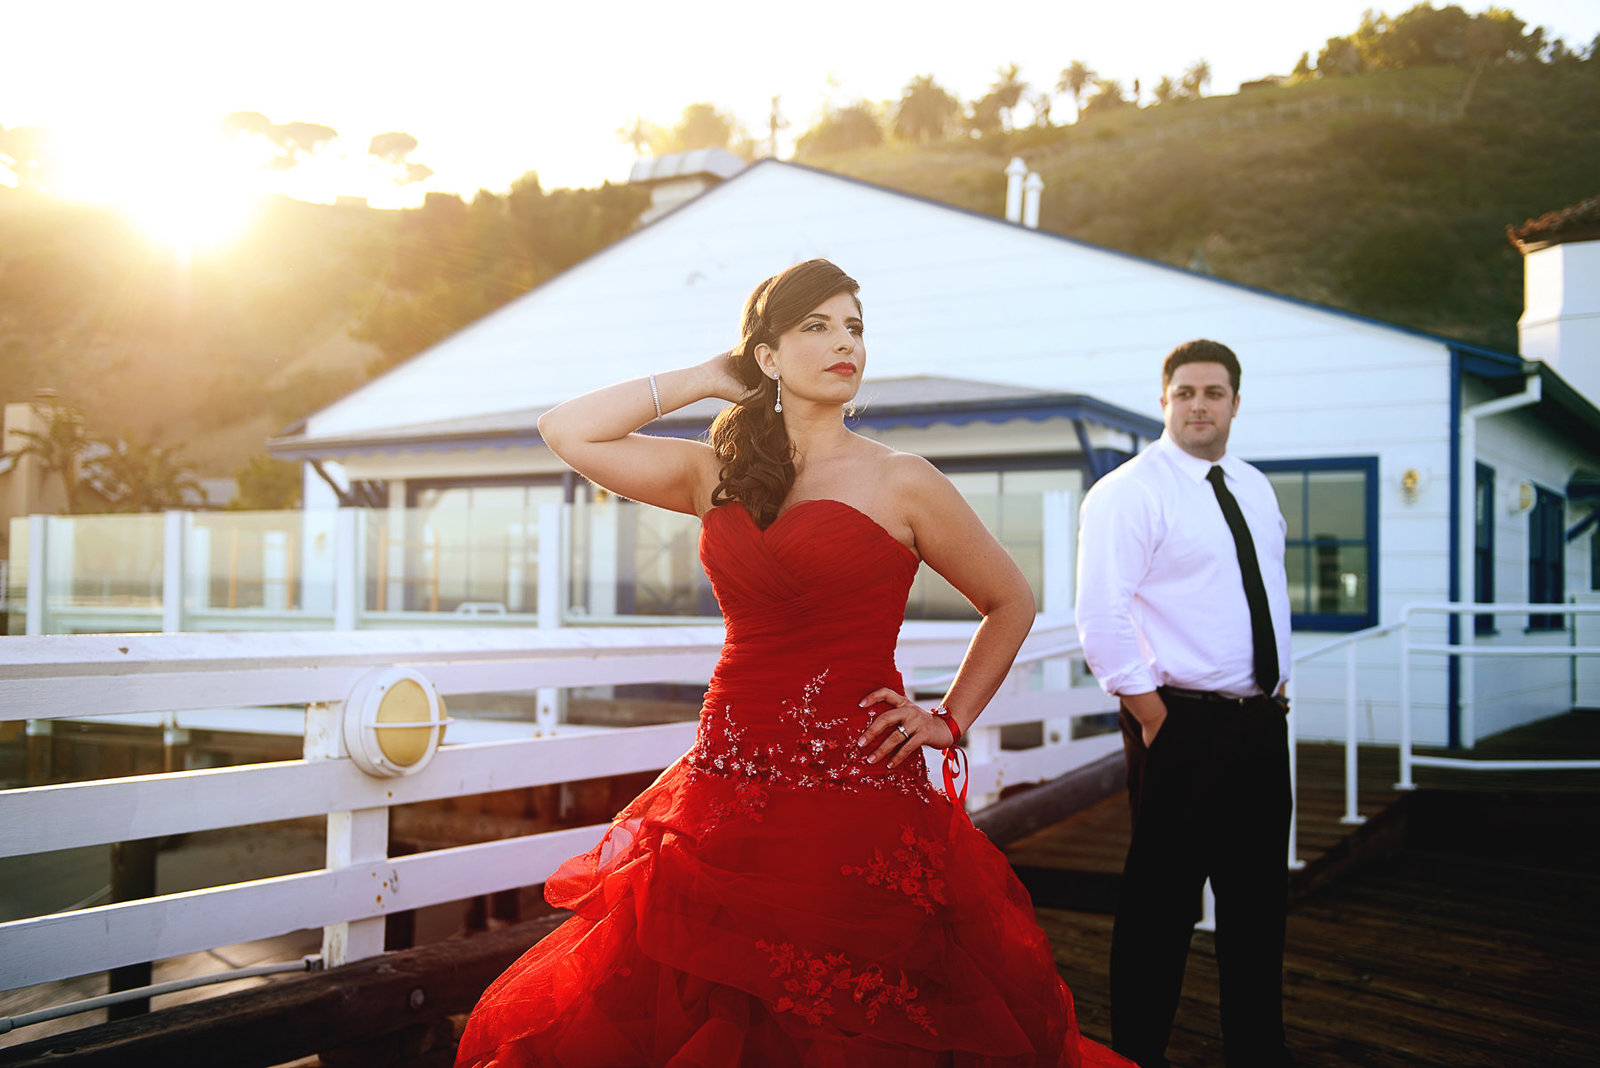 malibu wedding photographer photos celebrity wedding photographer bryan newfield photography ruth mike 31